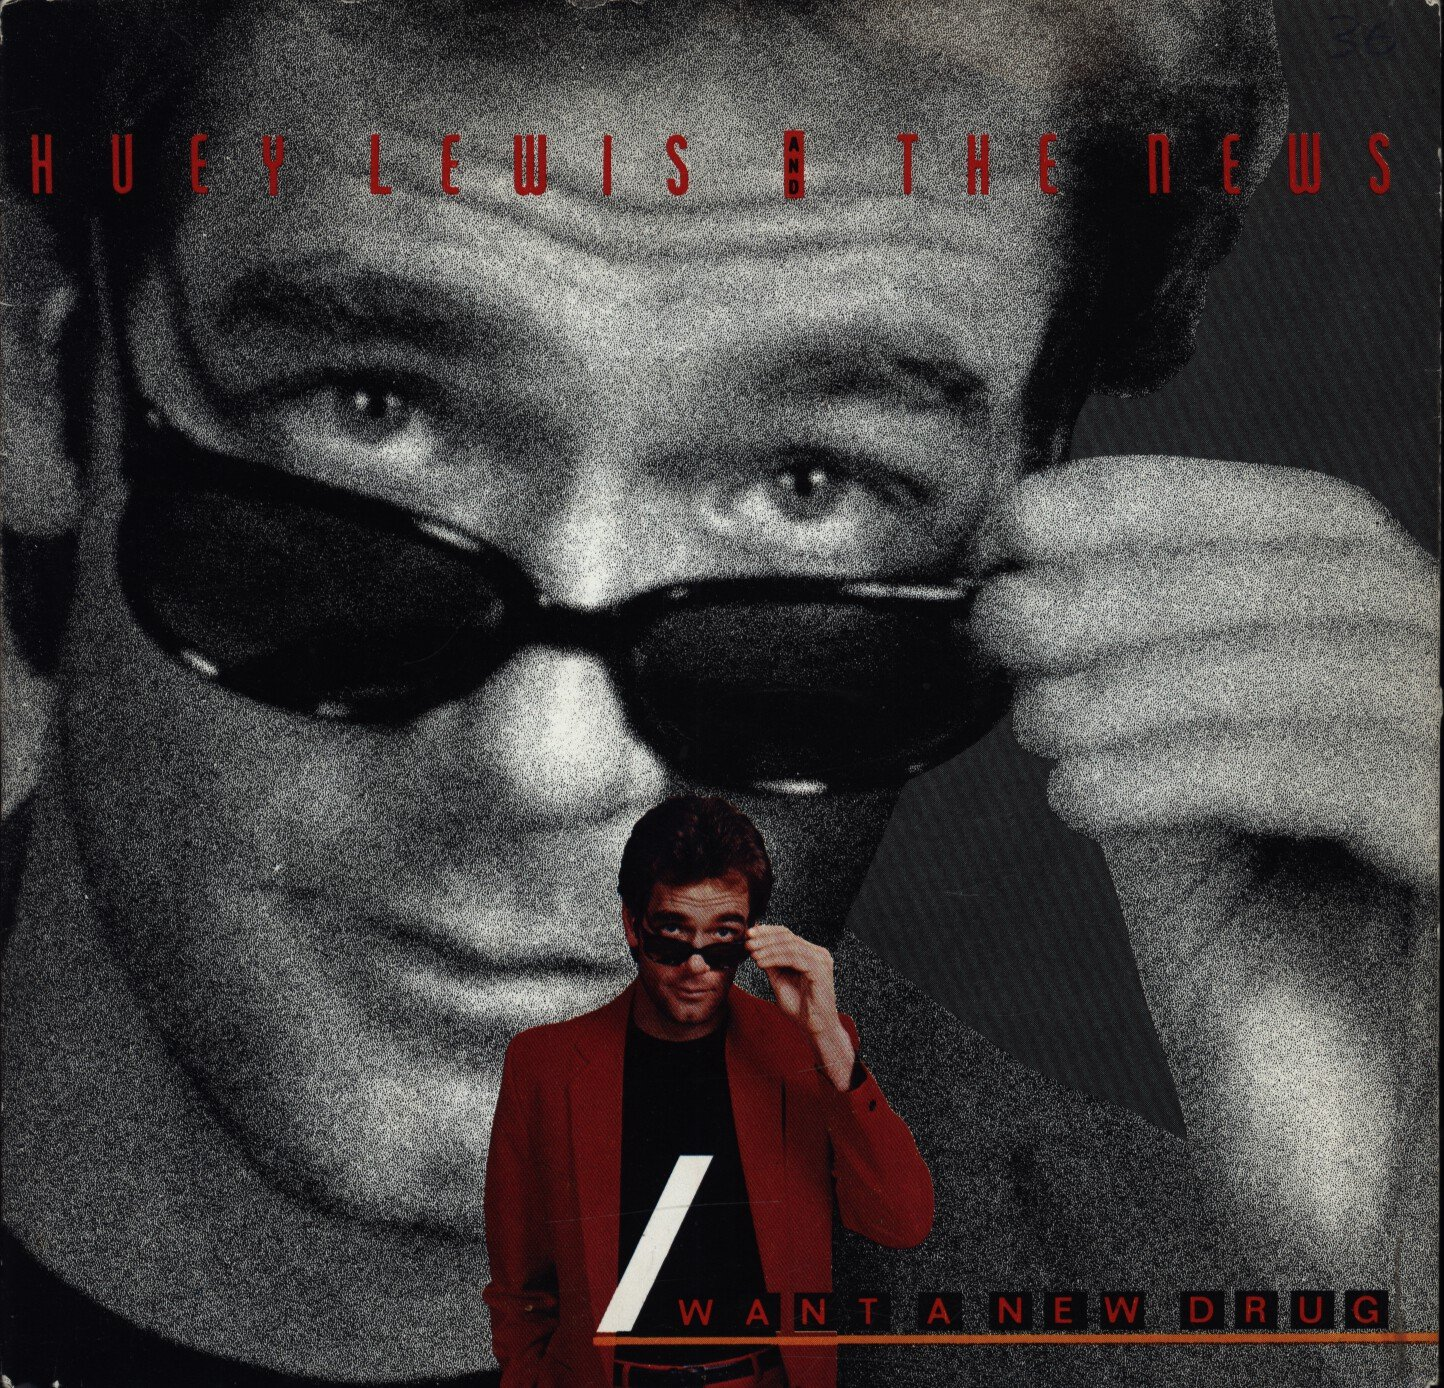 "Huey Lewis: I Want A New Drug / Finally Found a Home 7"" 45 VG++ Canada"